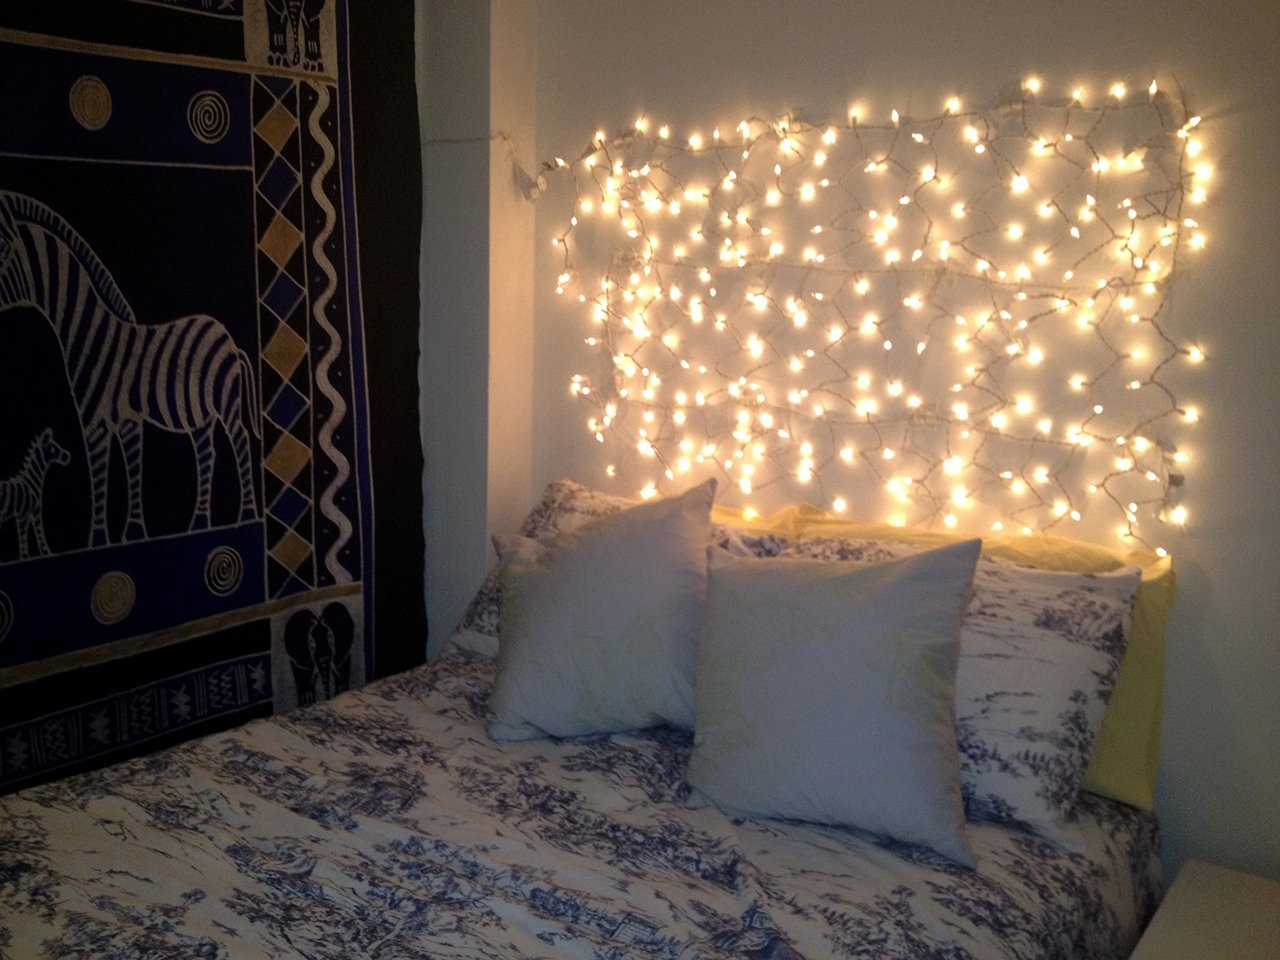 Wall Lamps Bedroom Diy Hanging Lights